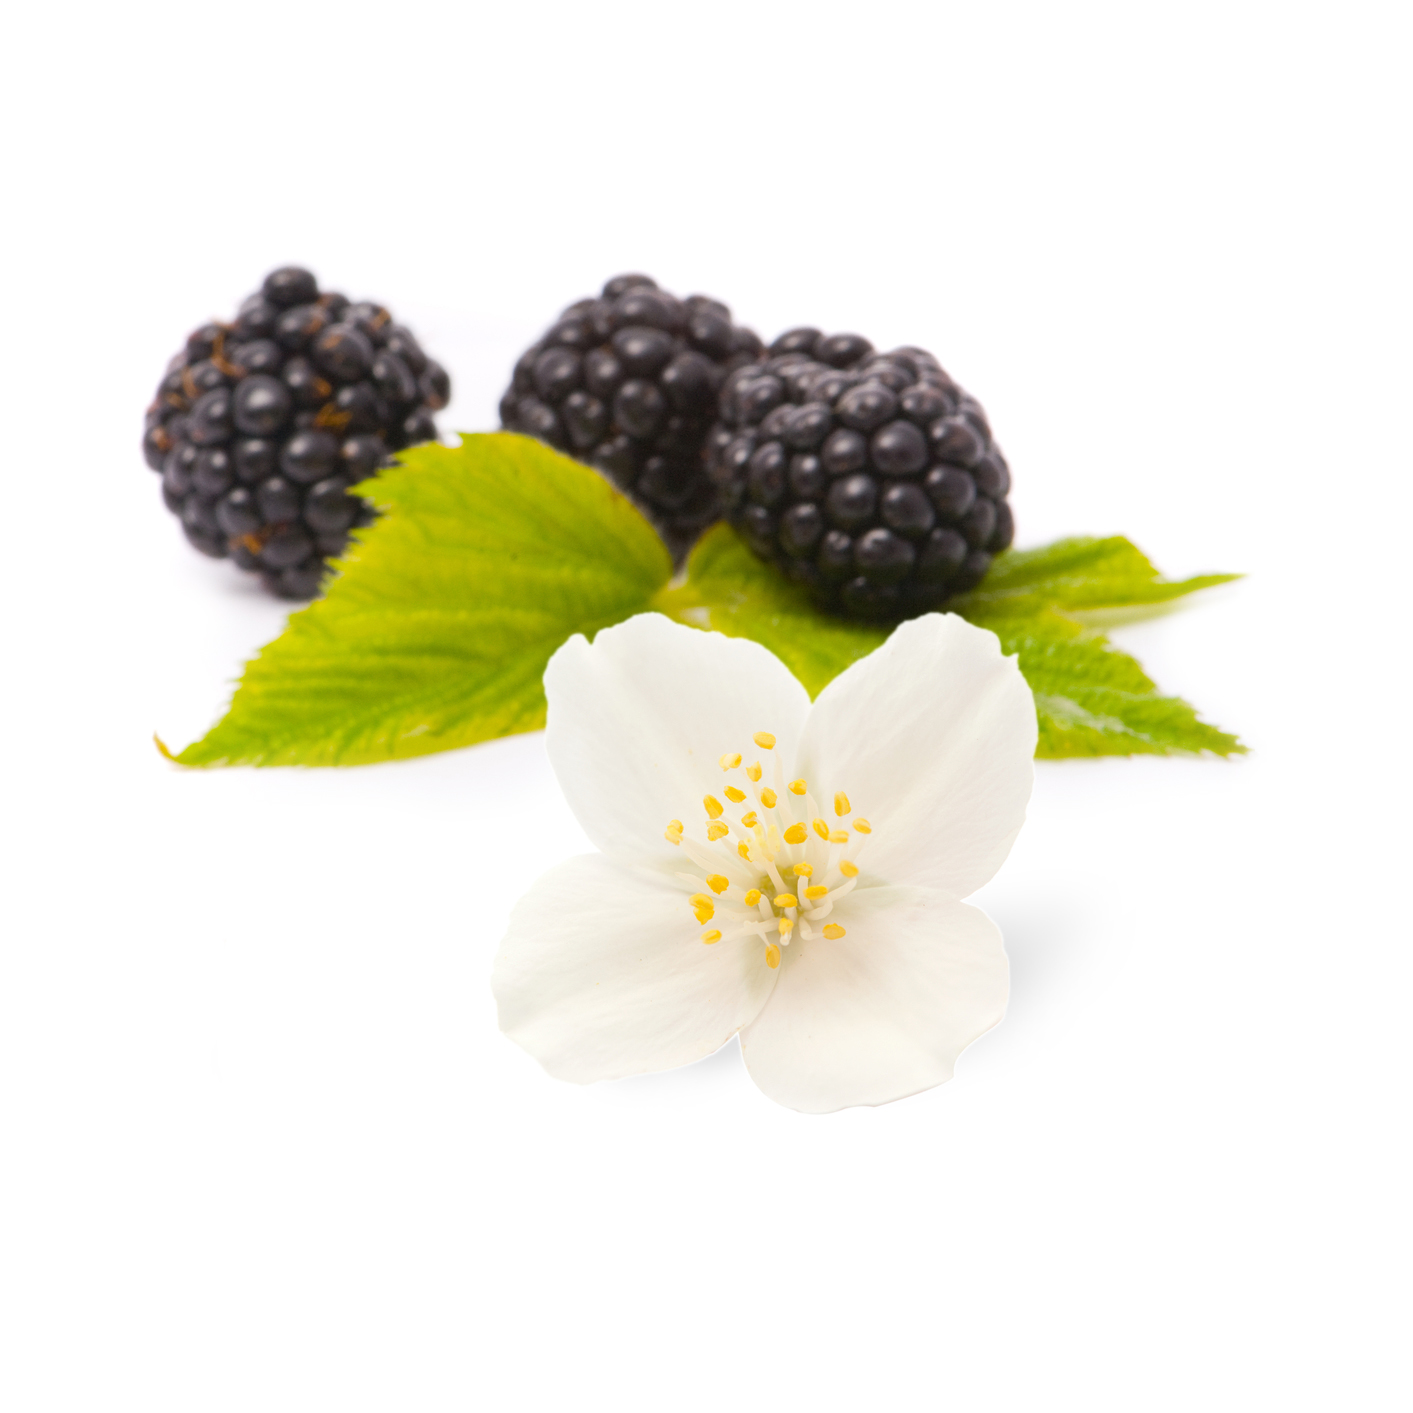 16-blackberry-jasmine-oolong-tea3.jpg_product